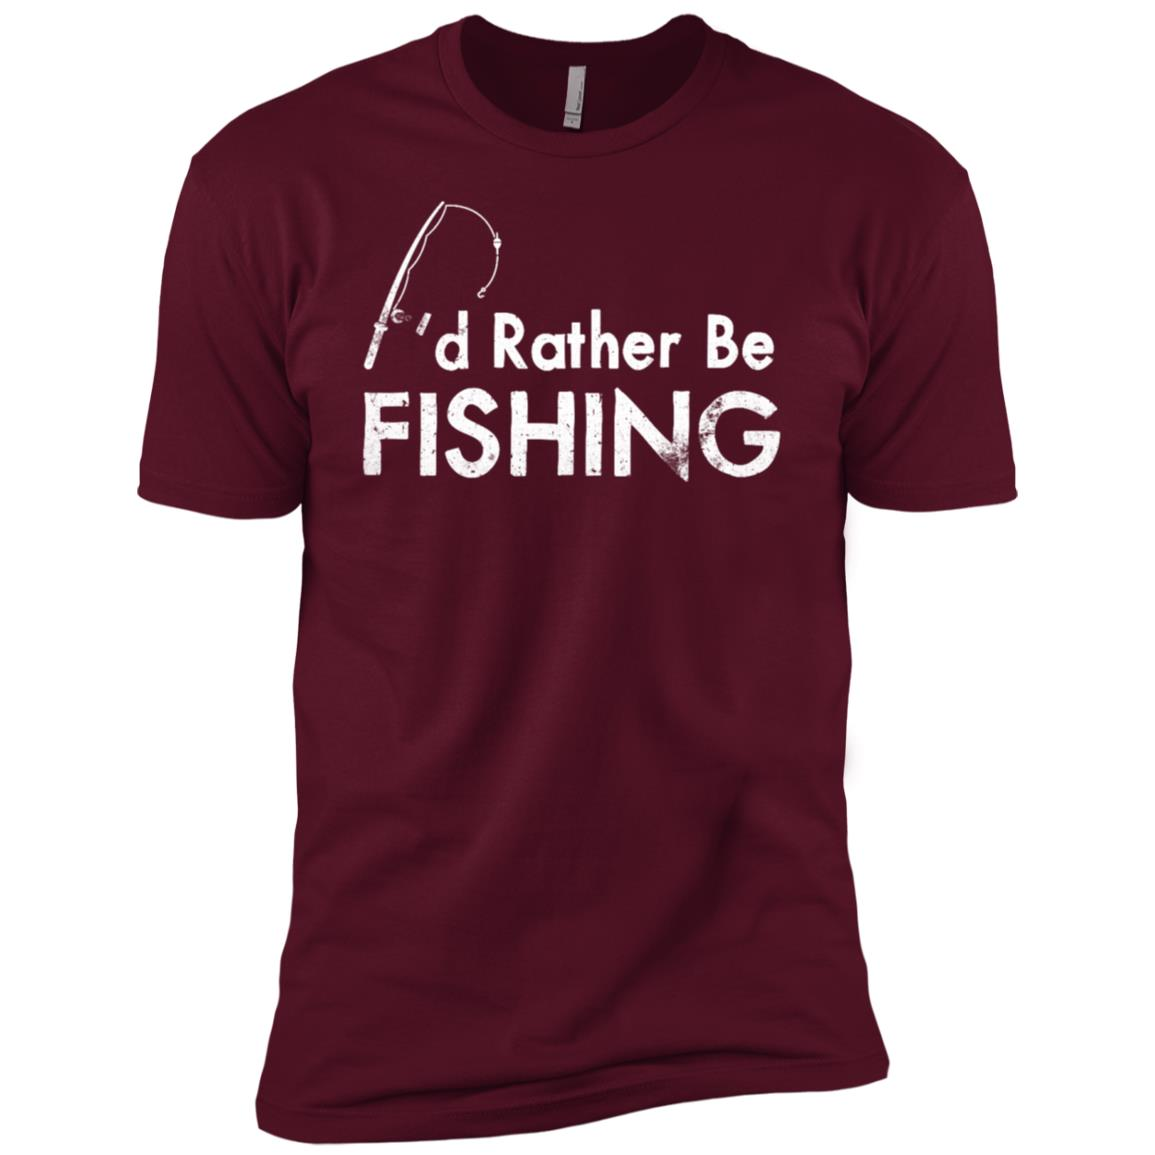 I'd Rather Be Fishing Camping Funny Camping -3 Men Short Sleeve T-Shirt